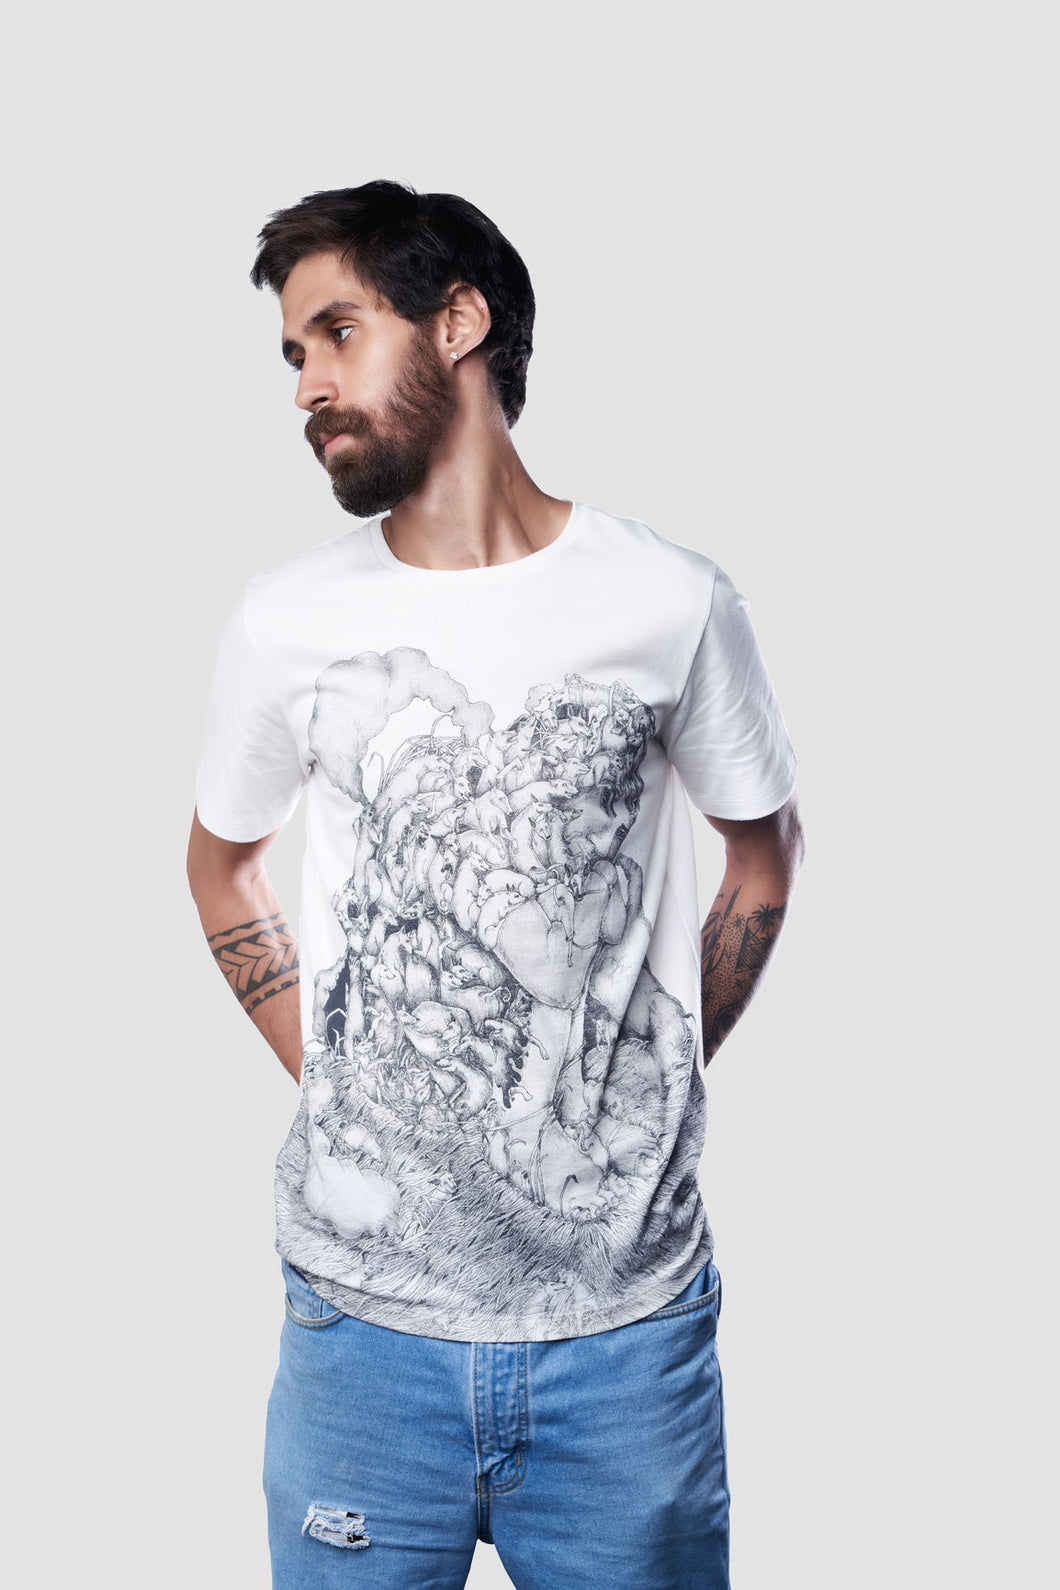 Skeletons In Your Closet, T-Shirt for Men, 100% Organic Egyptian Cotton, White